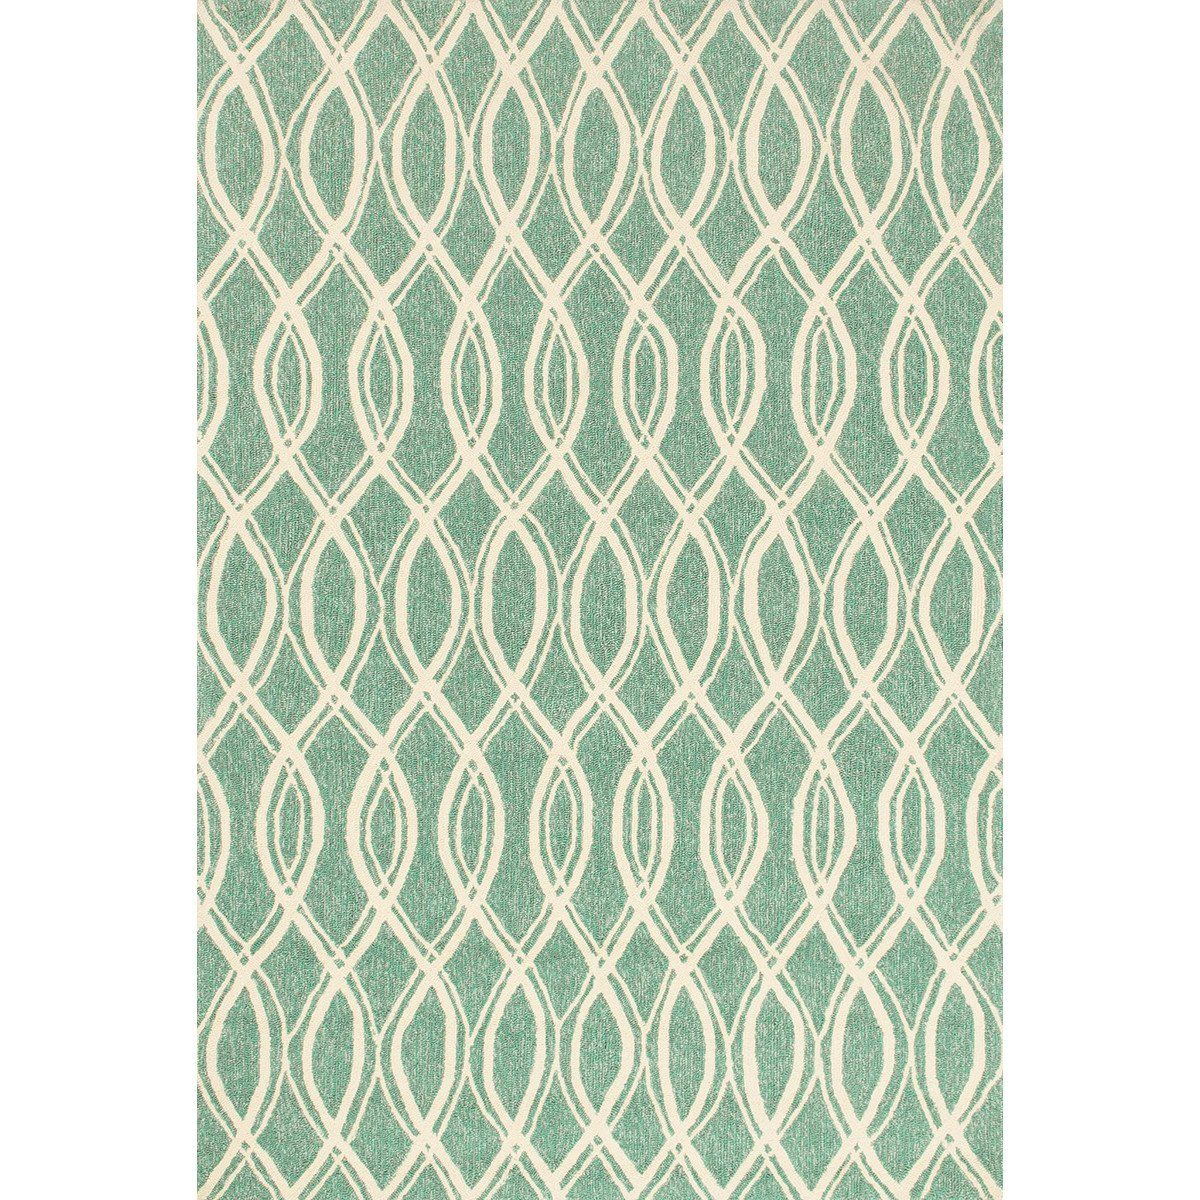 Loloi Venice Beach Turquoise And Ivory Rug Rugs Indoor Outdoor Rugs Outdoor Rugs